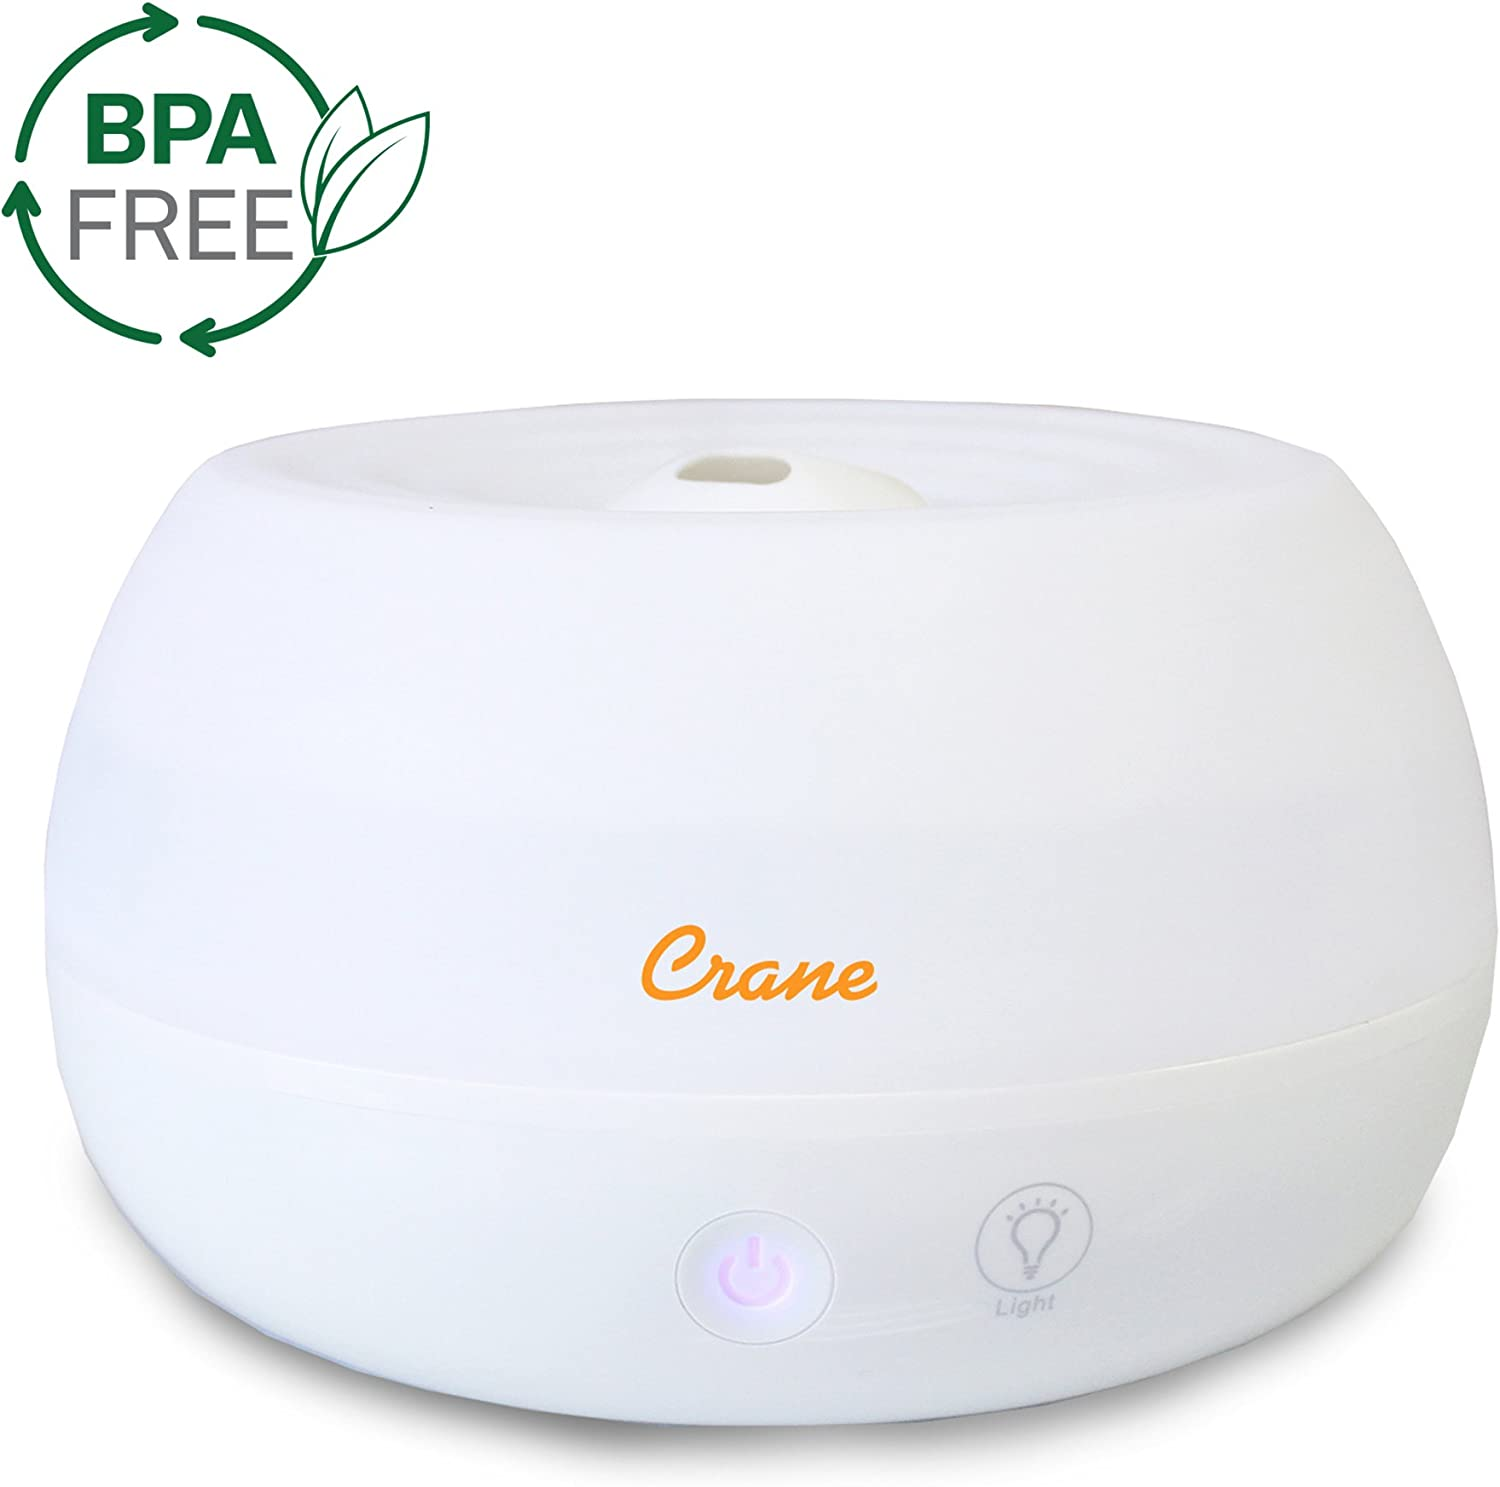 New Ultrasonic Humidifier Air Cool Mist Purifier Home Room Aroma Diffuser White